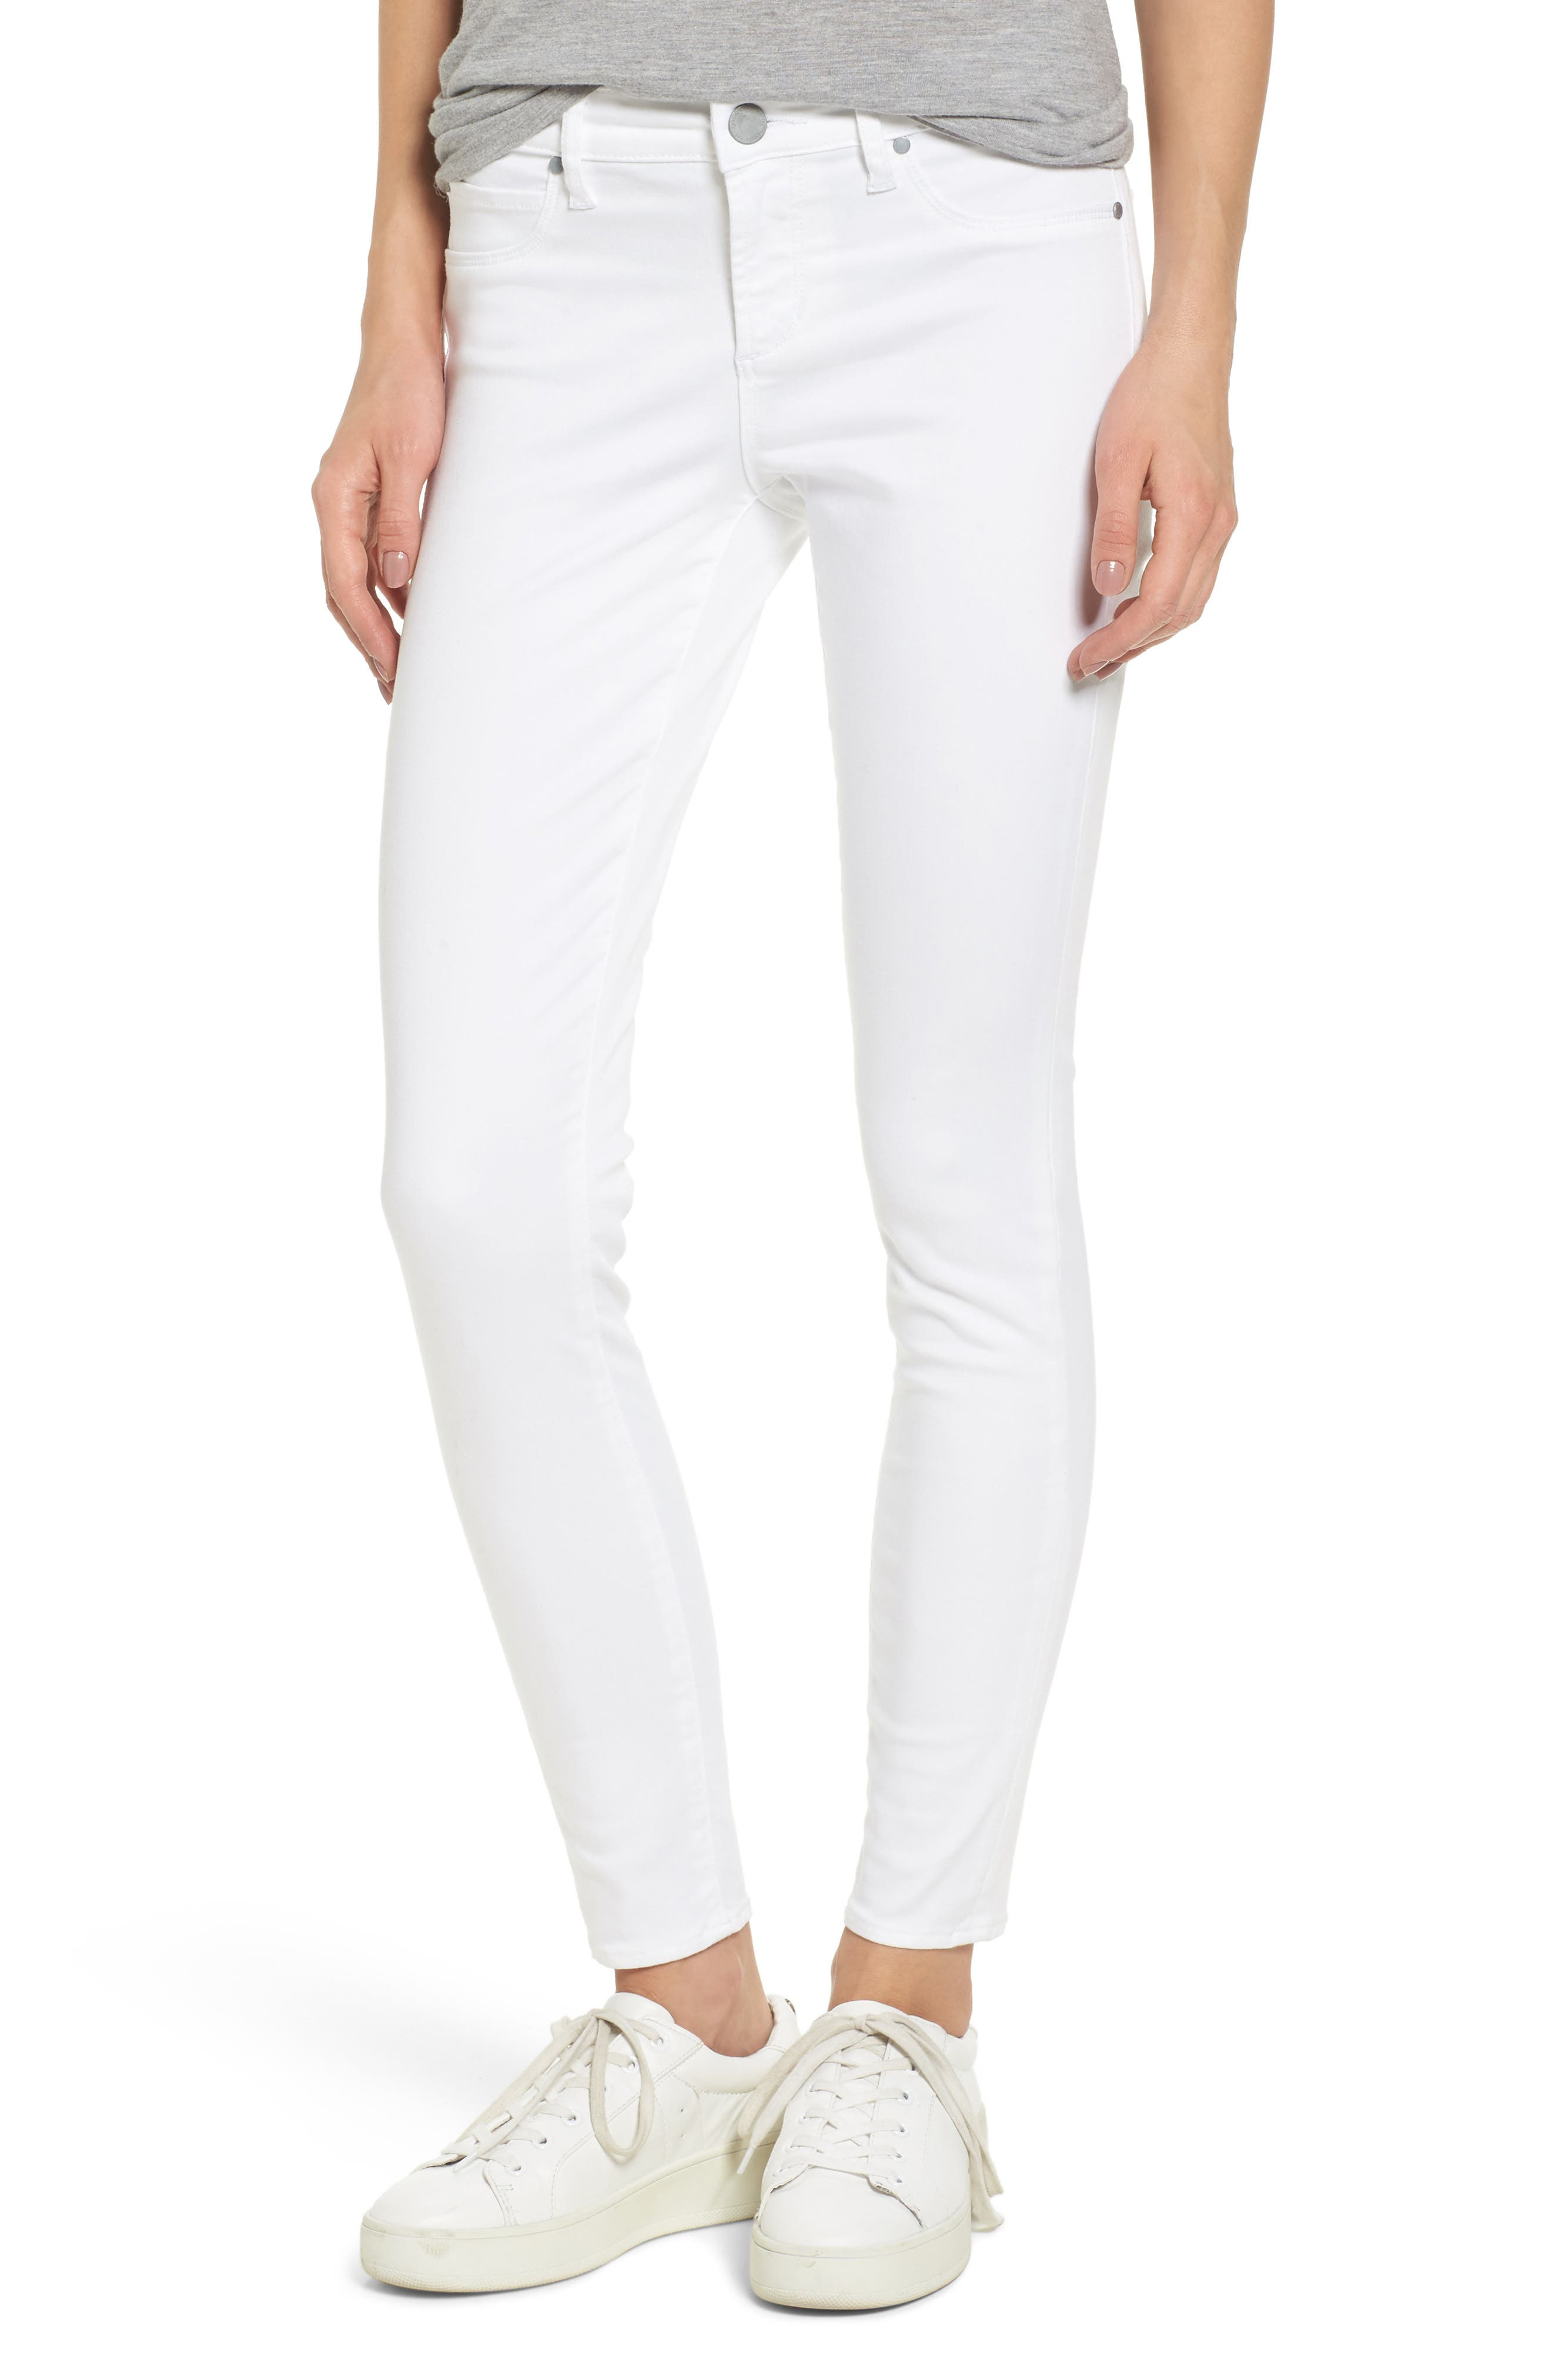 Hollister girls 3L, w26 L 32, White High Rise Super Skinny jeans. No other spots and ankles of the jeans in perfect condition. Tilly's RSQ Ibiza White Extremely Skinny Jeans Rip Style-Womens Girls .